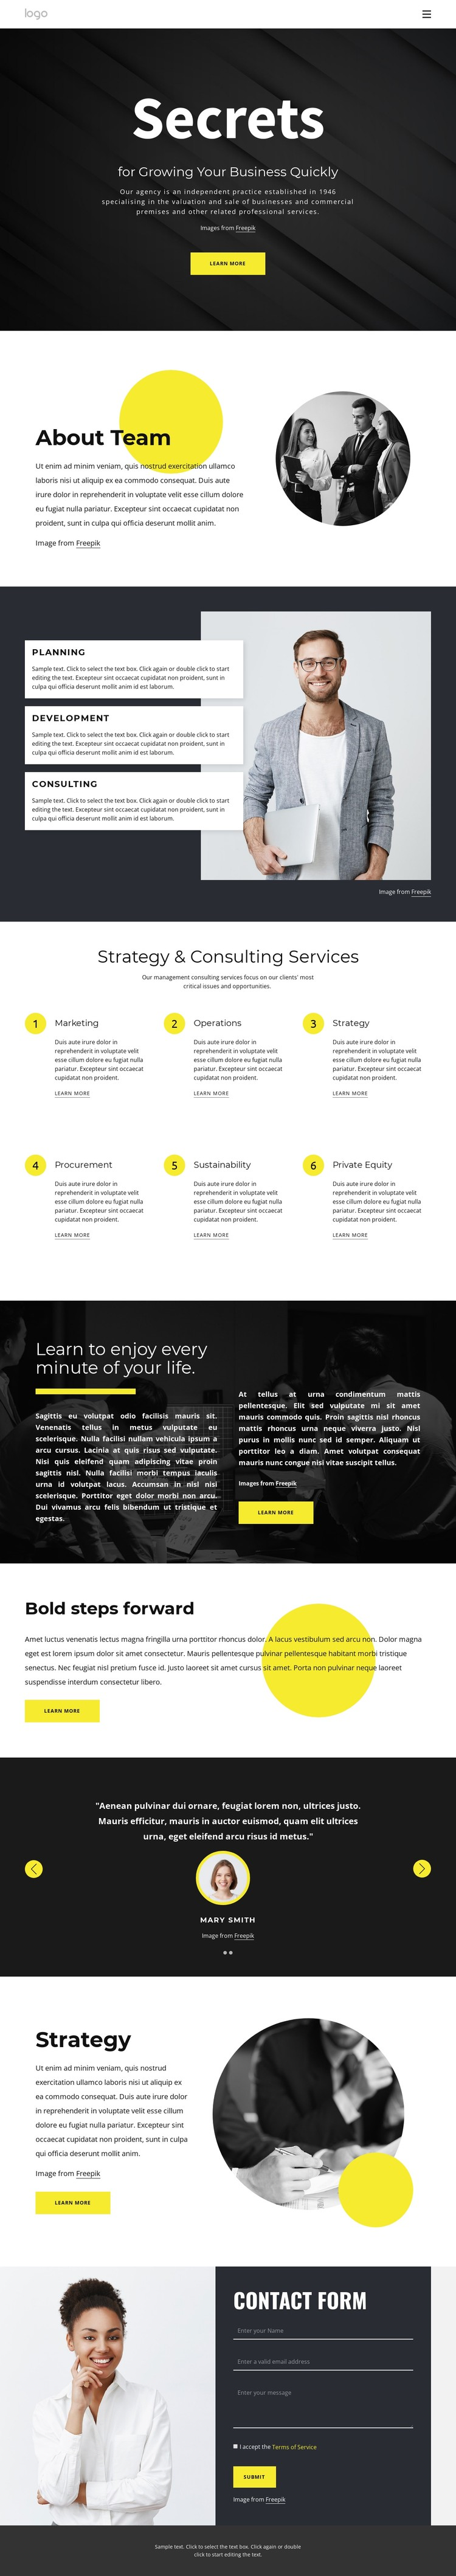 Secrets of growing business CSS Template